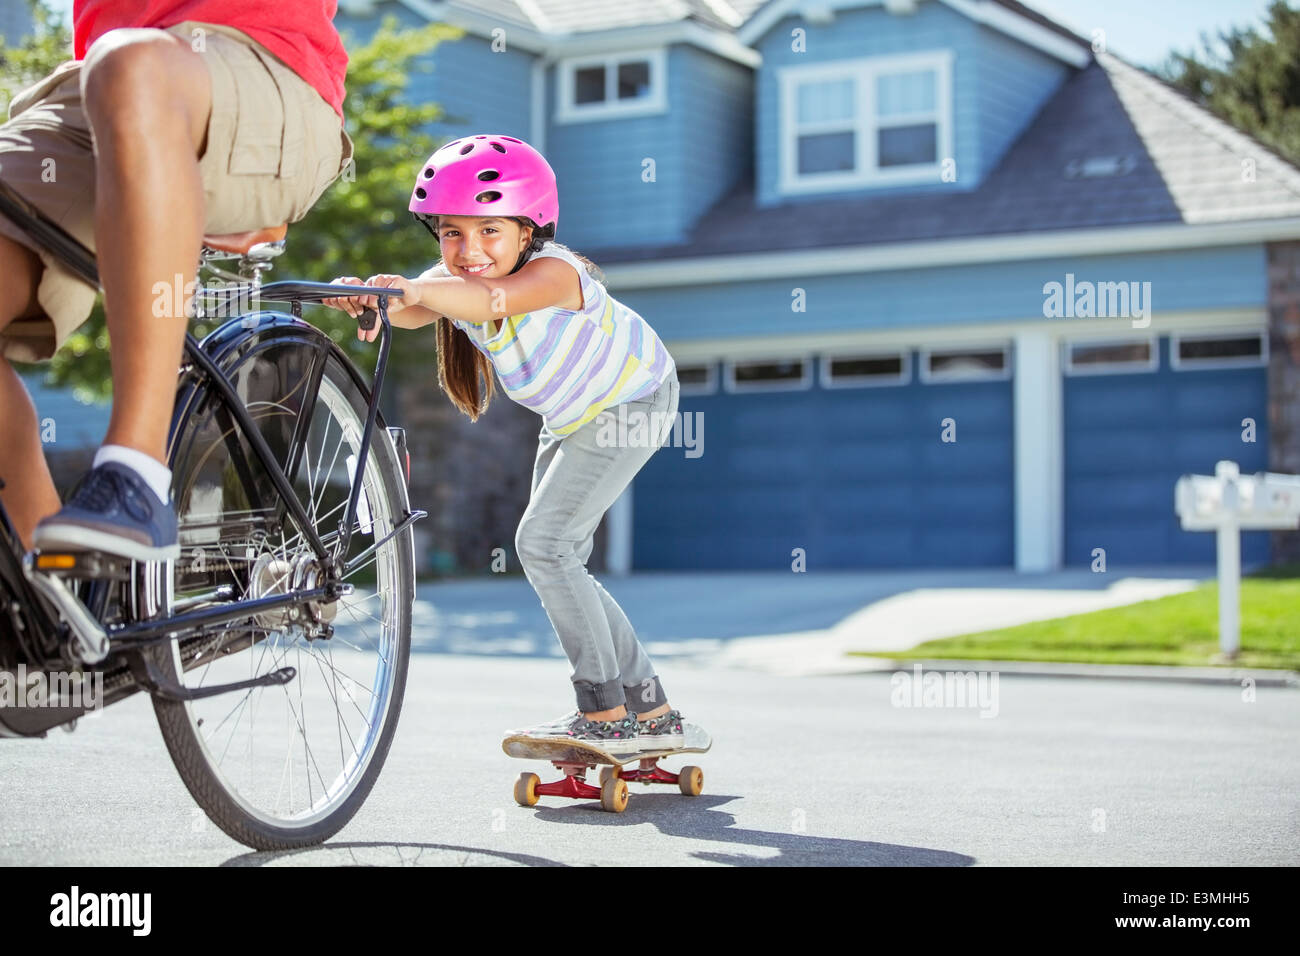 Father on bicycle pulling daughter on skateboard - Stock Image